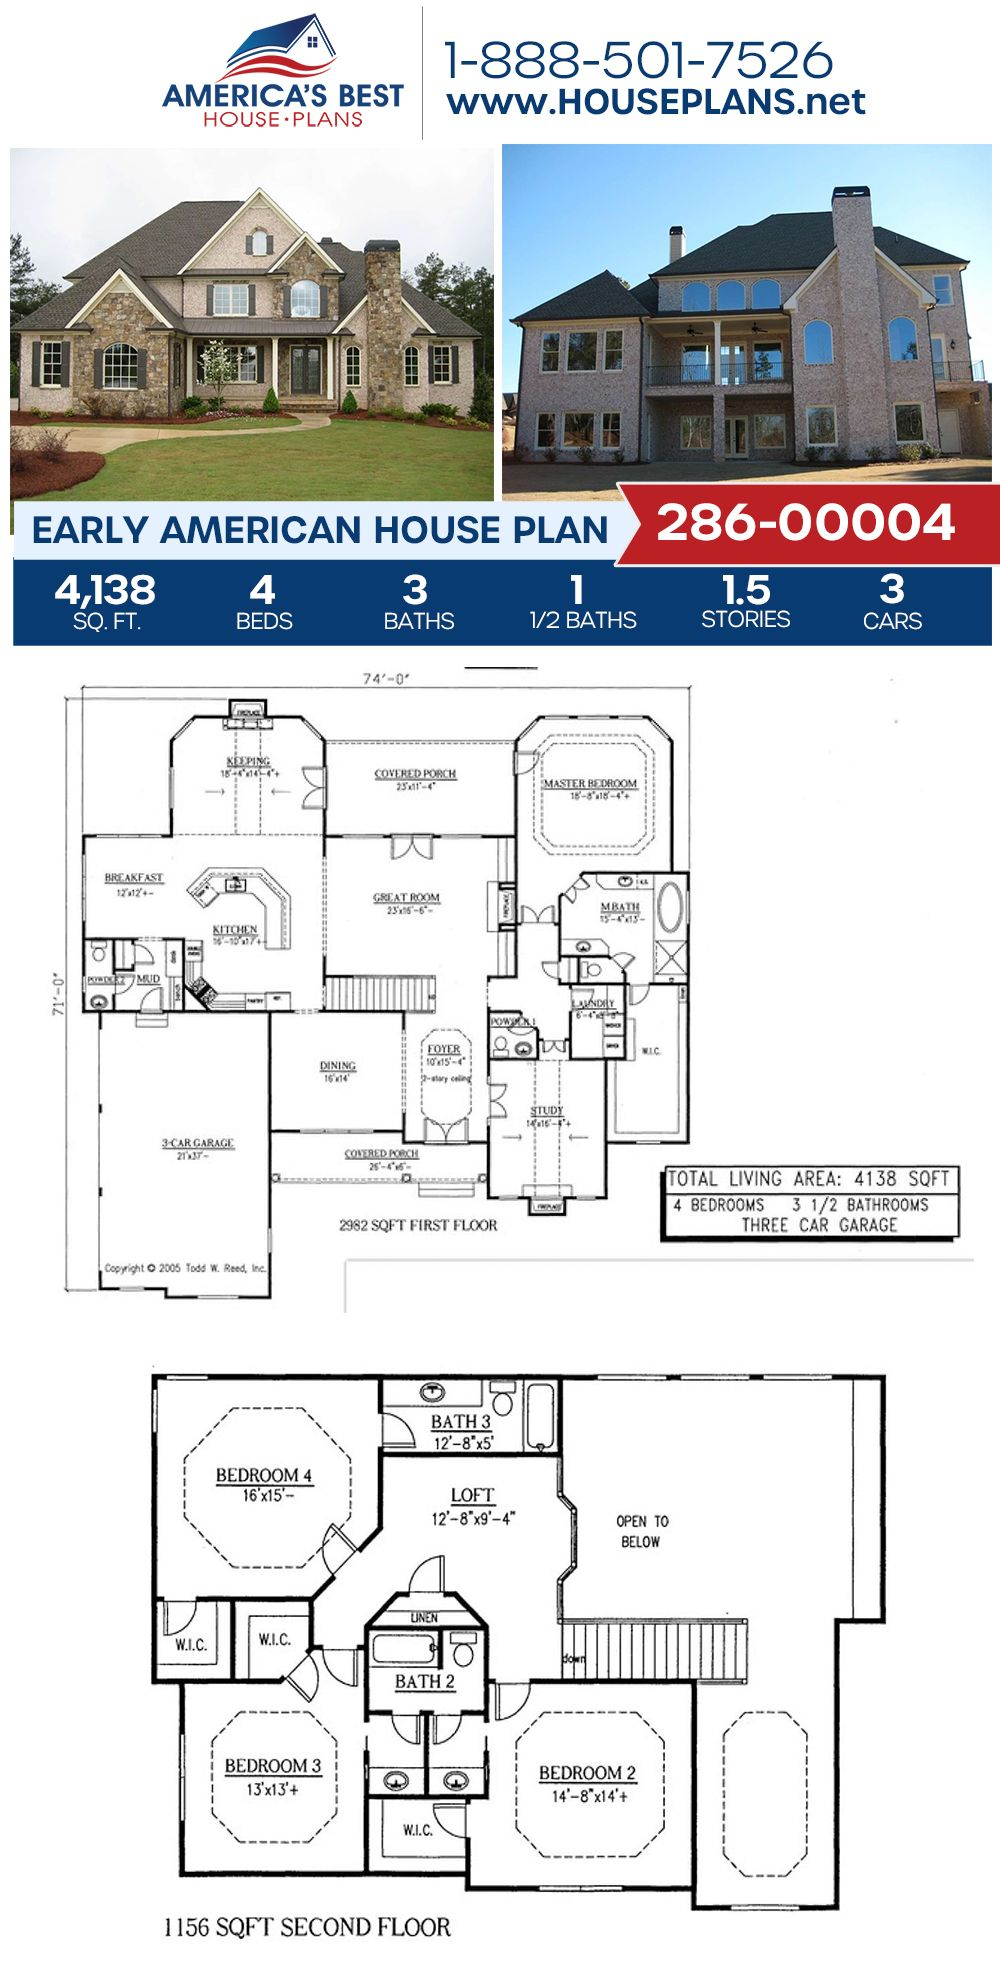 House Plan 286 00004 Early American Plan 4 138 Square Feet 4 Bedrooms 3 5 Bathrooms Two Story House Design Sims House Plans Dream House Plans